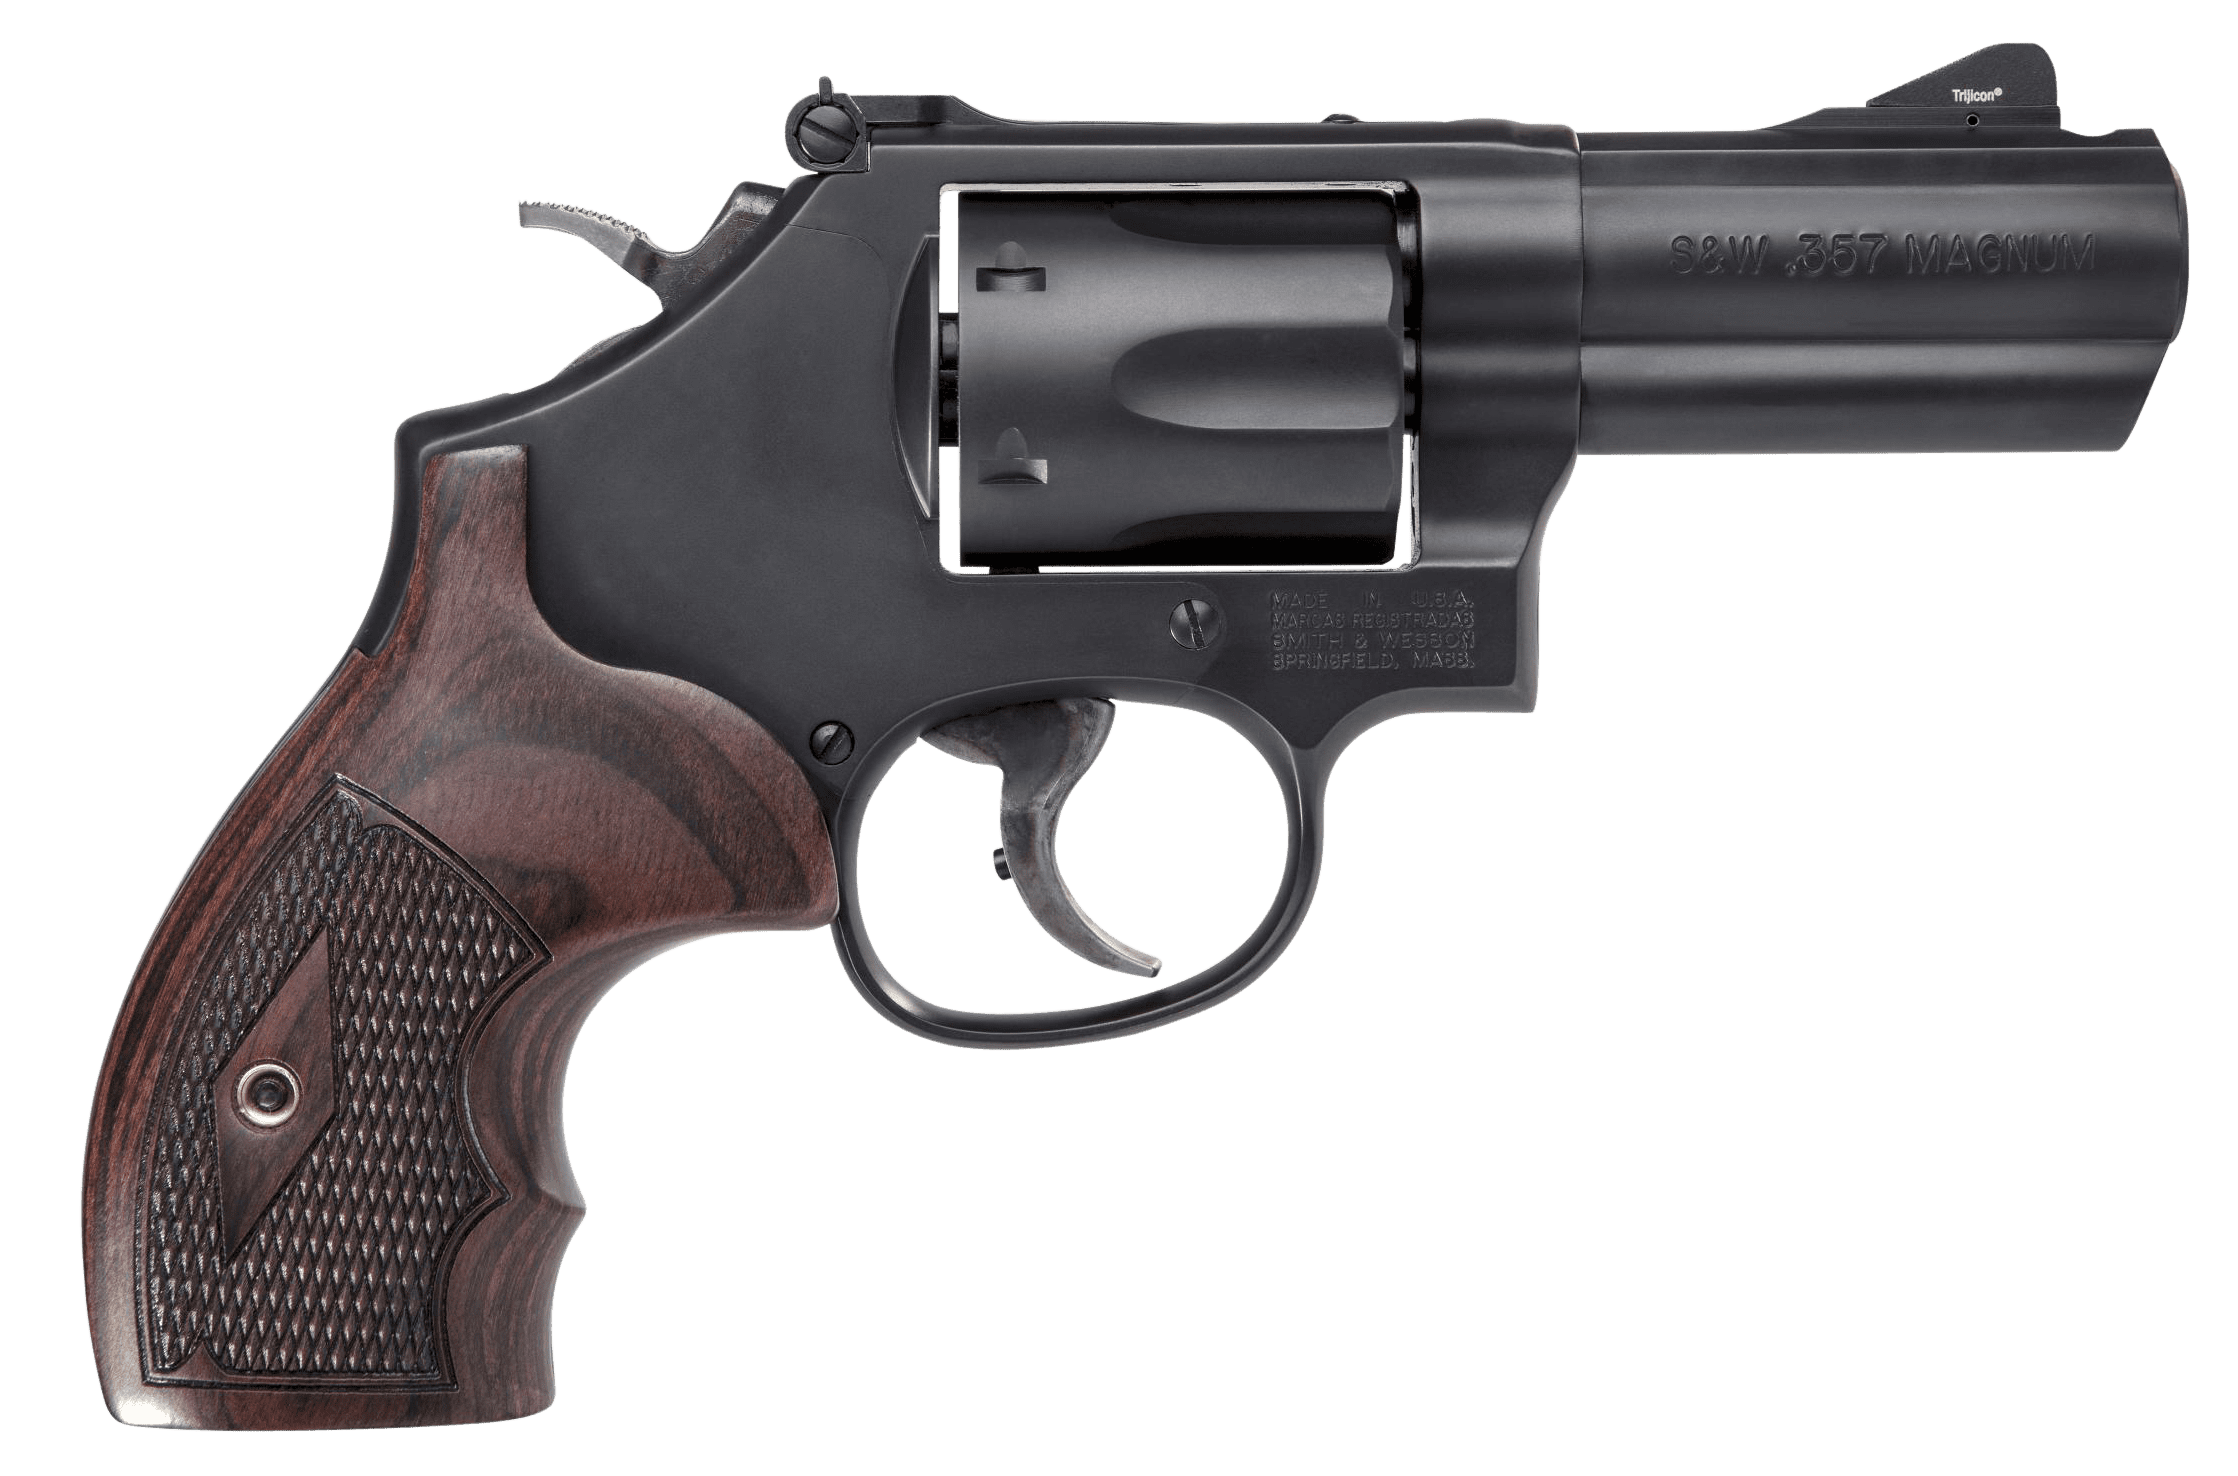 Smith & Wesson Model 19 Carry Comp 357 Magnum Revolver, Ported Barrel, 3 0